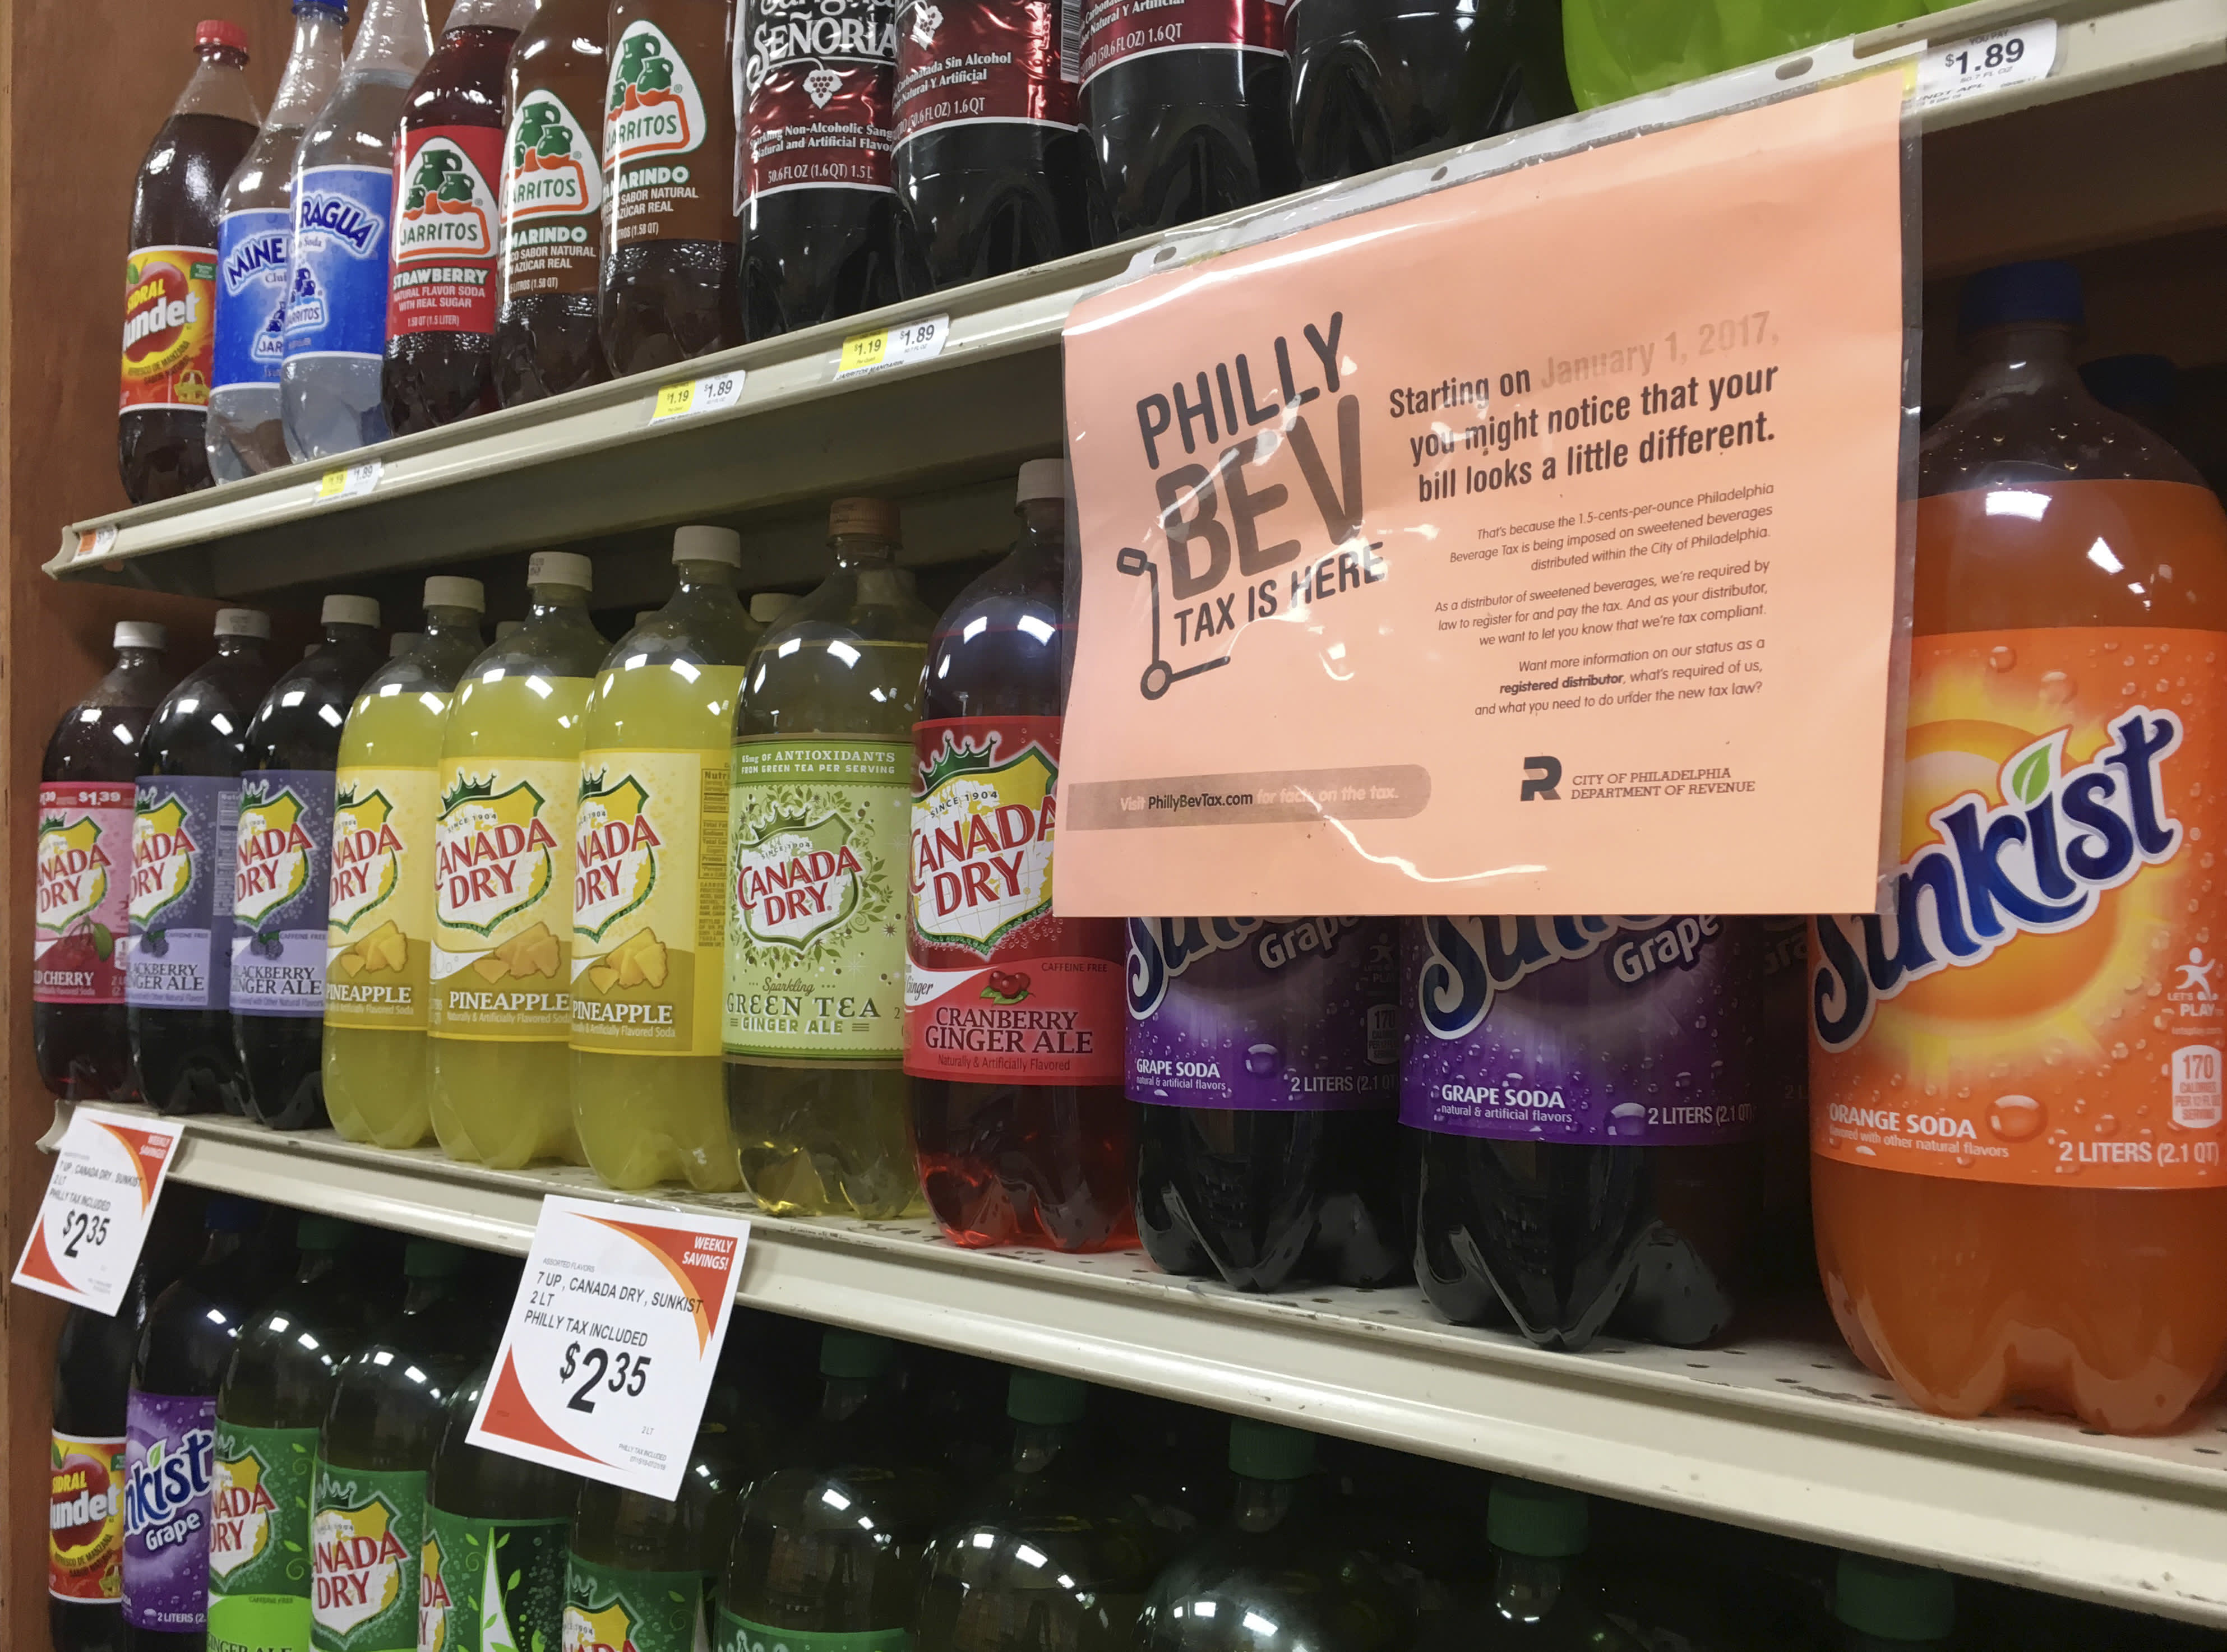 A sweetened beverage tax sign is posted by sweetened beverages at a supermarket in the Port Richmond neighborhood of Philadelphia, Wednesday, July 18, 2018.